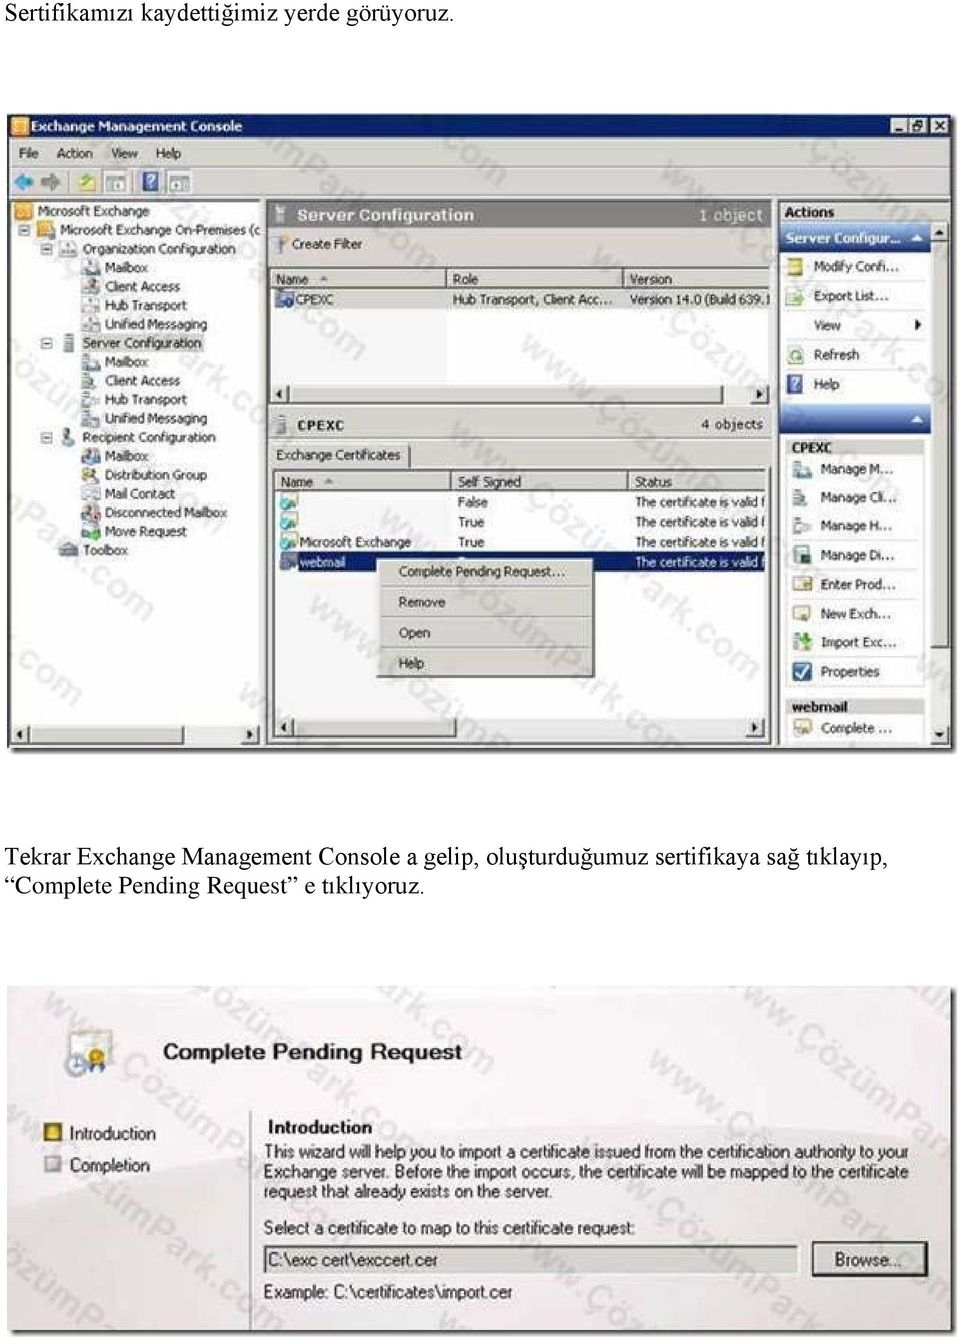 Tekrar Exchange Management Console a